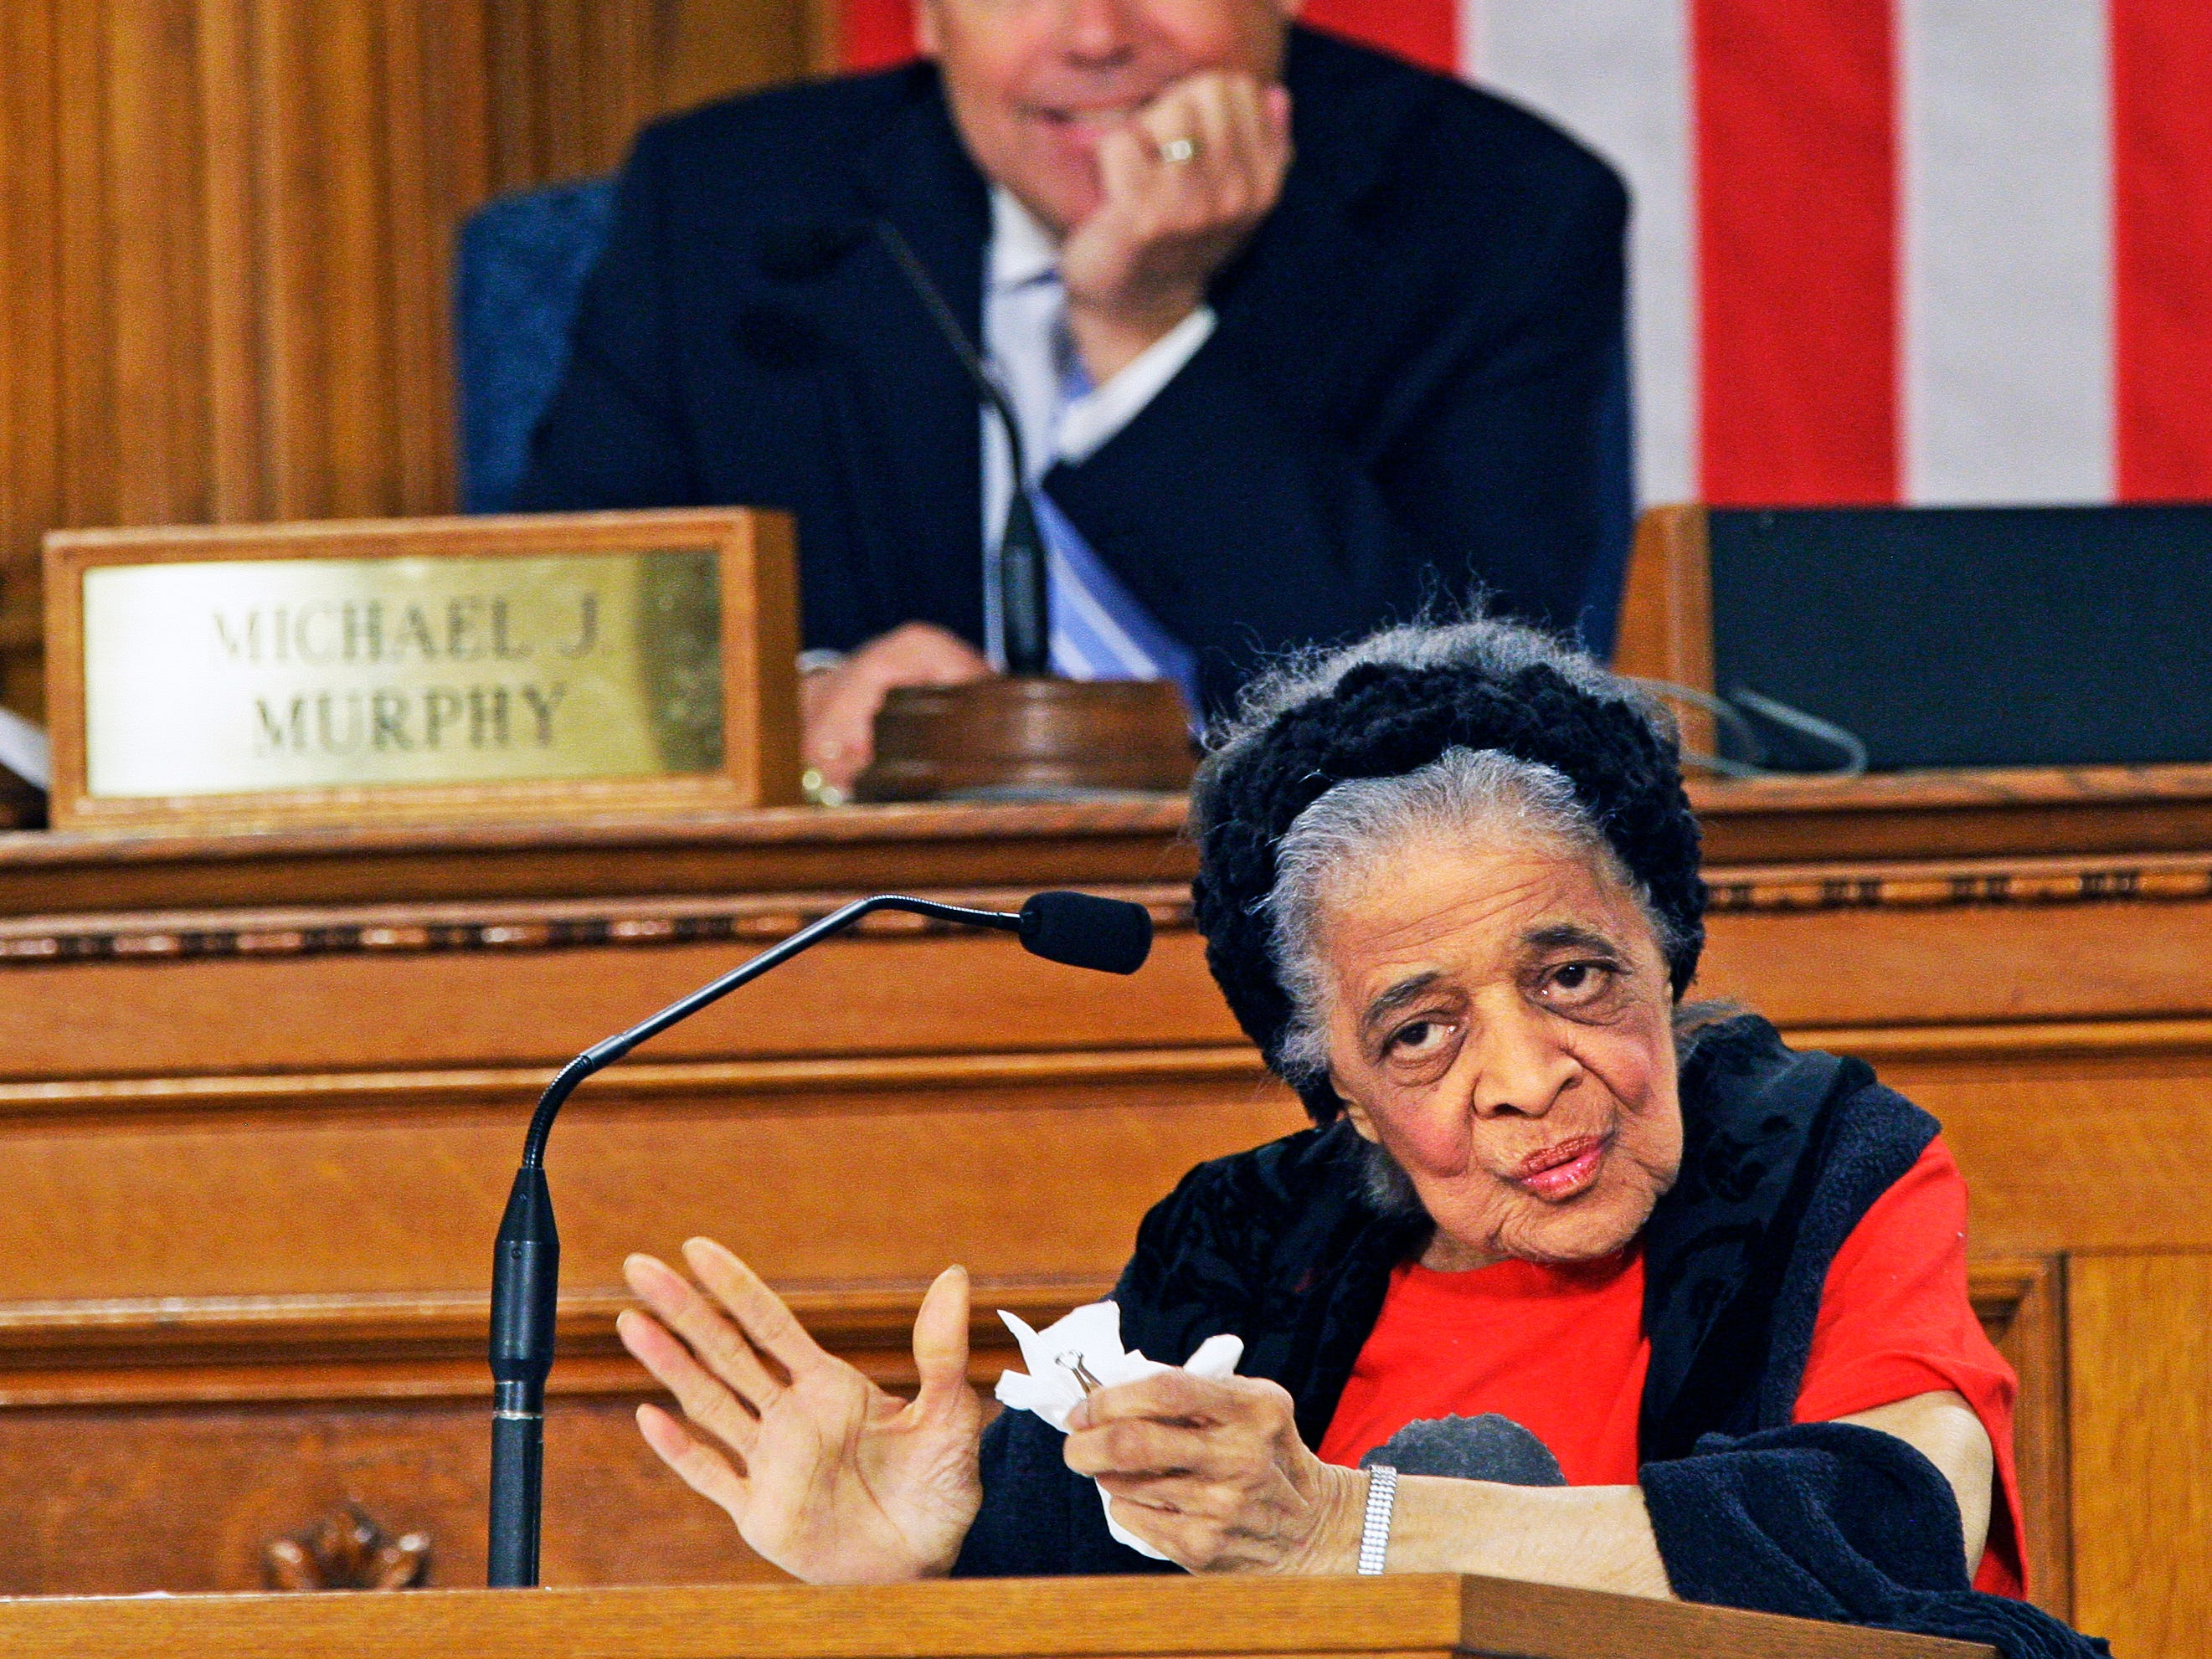 Vel Phillips, 90, speaks to the Common Council from the president's desk, while  Common Council President Michael Murphy looks on in this March 4, 2014 Journal Sentinel file photo. Phillips was being honored at the Common Council meeting at Milwaukee City Hall for her many years as a civil rights advocate and her historical contribution to the city of Milwaukee.  Phillips paved the way as  the first woman and first African American woman in the Milwaukee Common Council. She died in 2018.